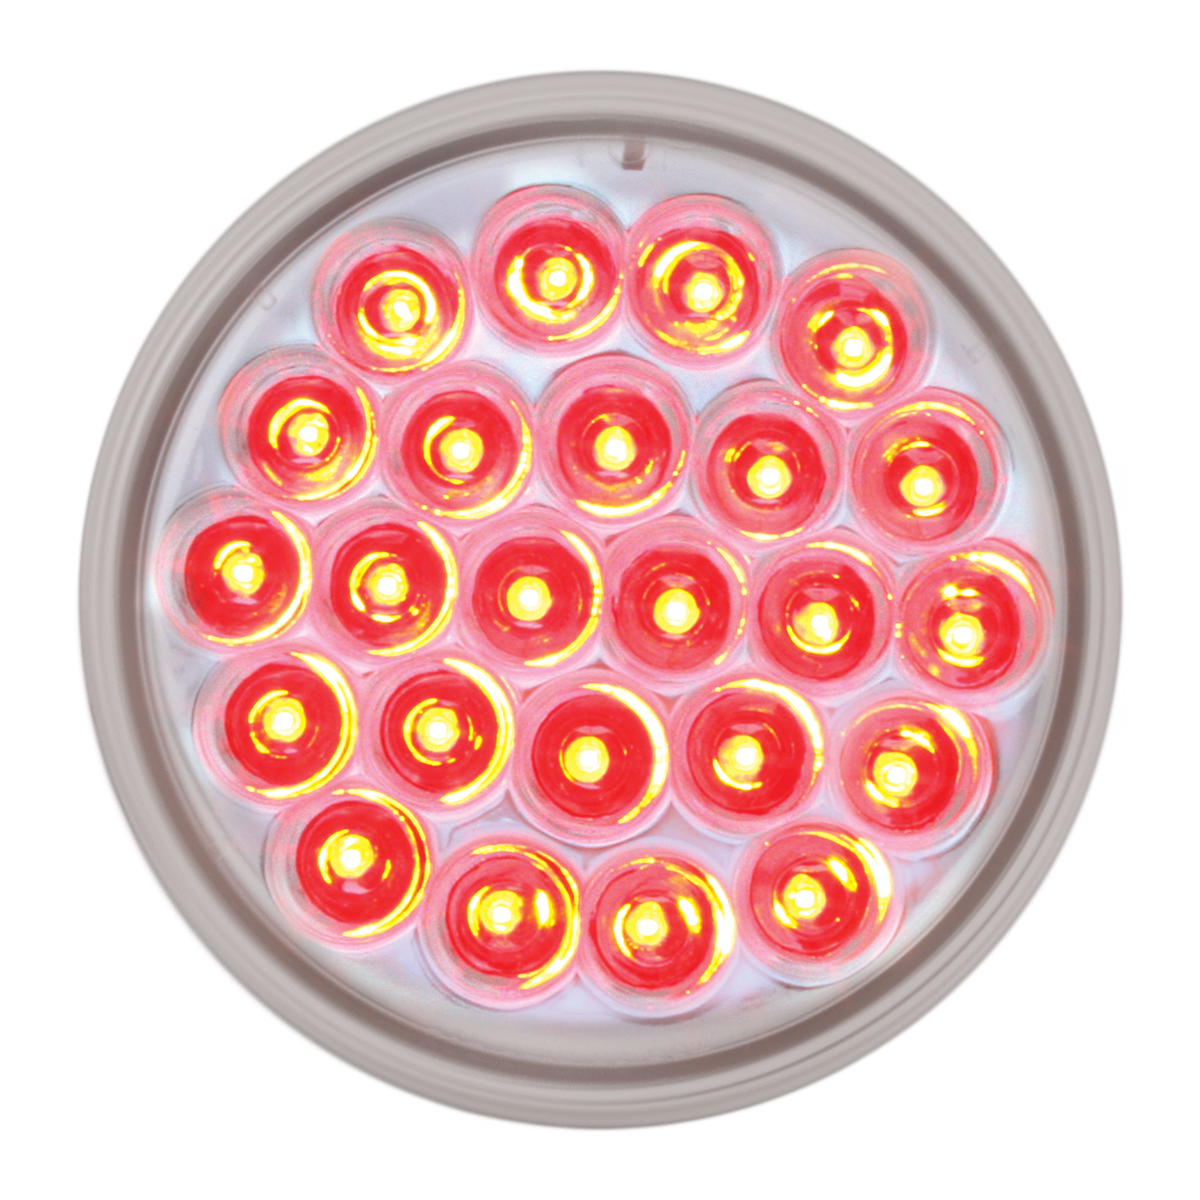 "#78274 - 4"" Round Pearl LED Flat Red/Clear Light"